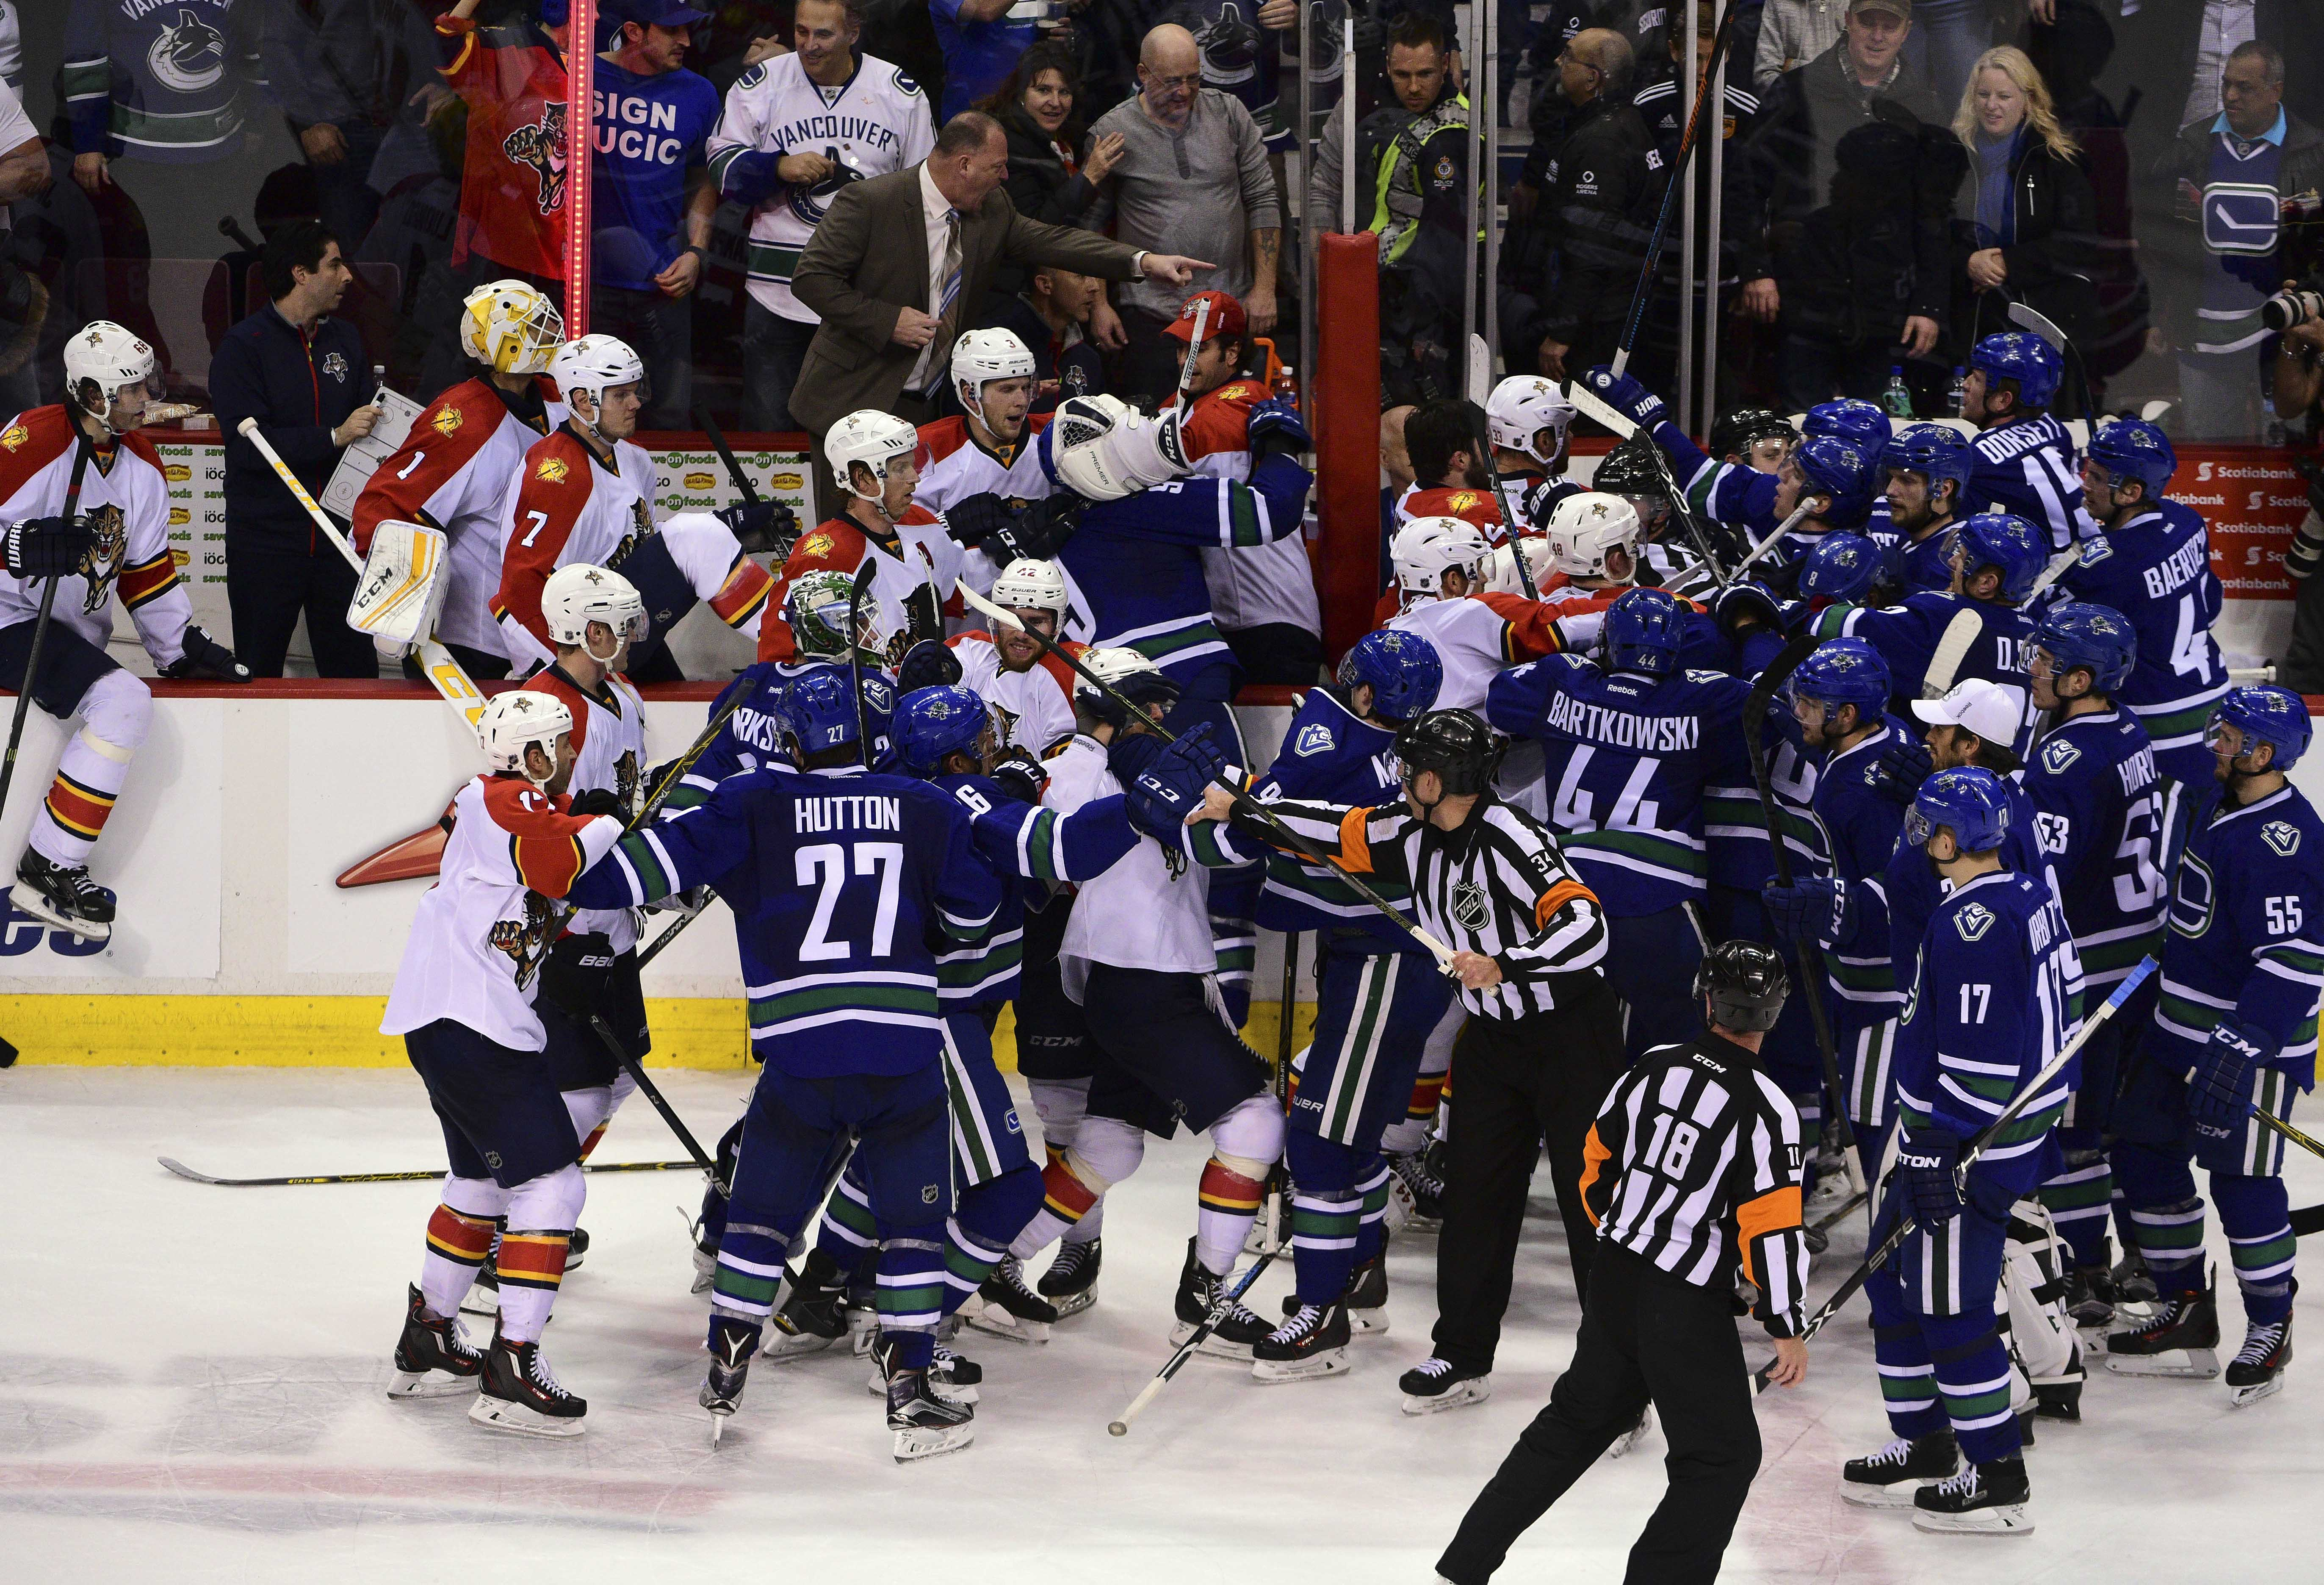 9052903-nhl-florida-panthers-at-vancouver-canucks